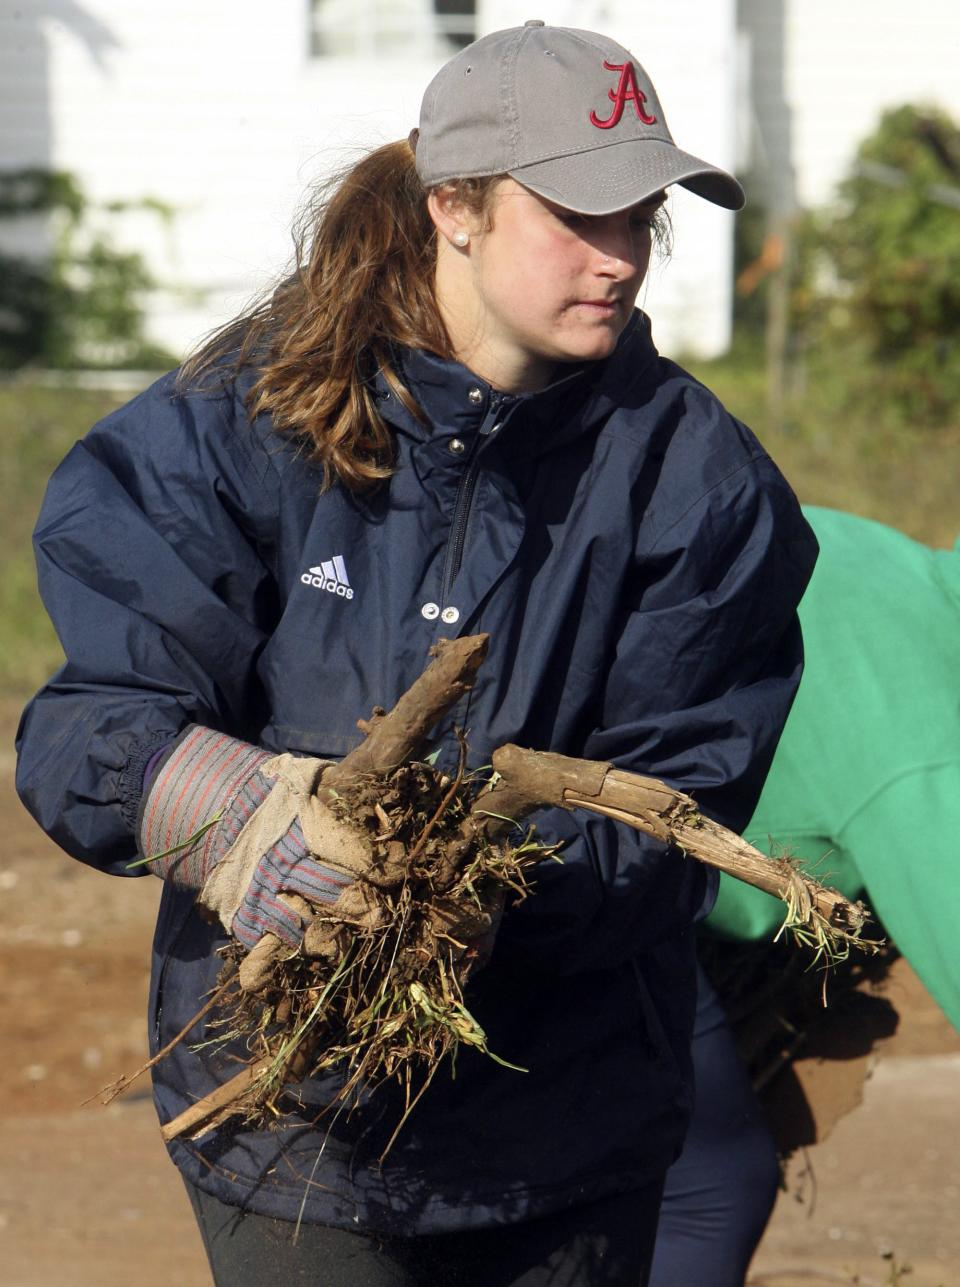 In this photo taken Oct. 19, 2011,  Notre Dame lacrosse player Adele Bruggeman picks up tornado debris in Tuscaloosa, Ala. Twenty-four student athletes from Notre Dame were in Tuscaloosa volunteering time during their fall break to help clean up tornado damaged areas. (AP Photo/The Tuscaloosa News, Robert Sutton)